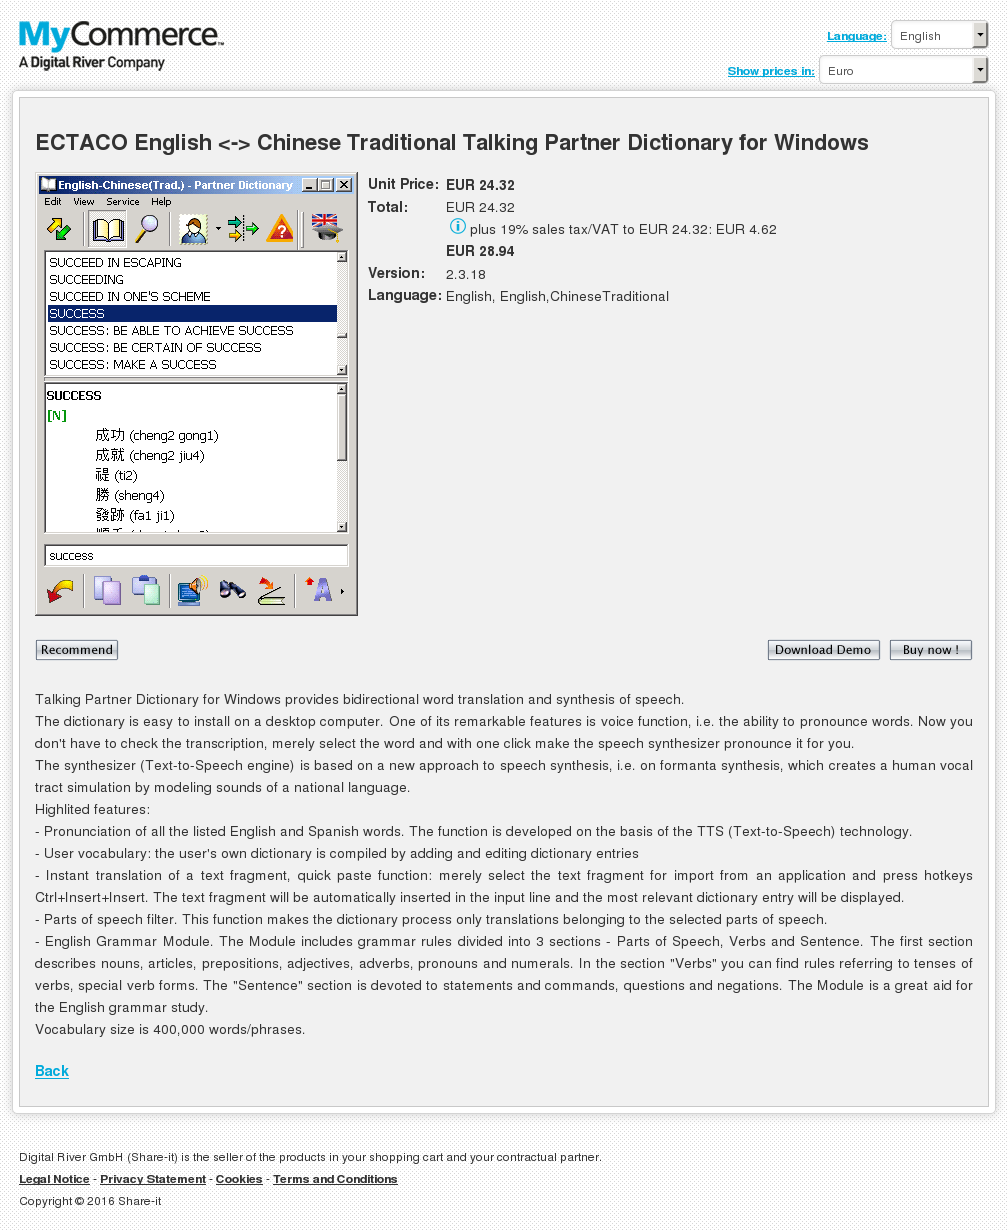 Ectaco English Chinese Traditional Talking Partner Dictionary Windows Free